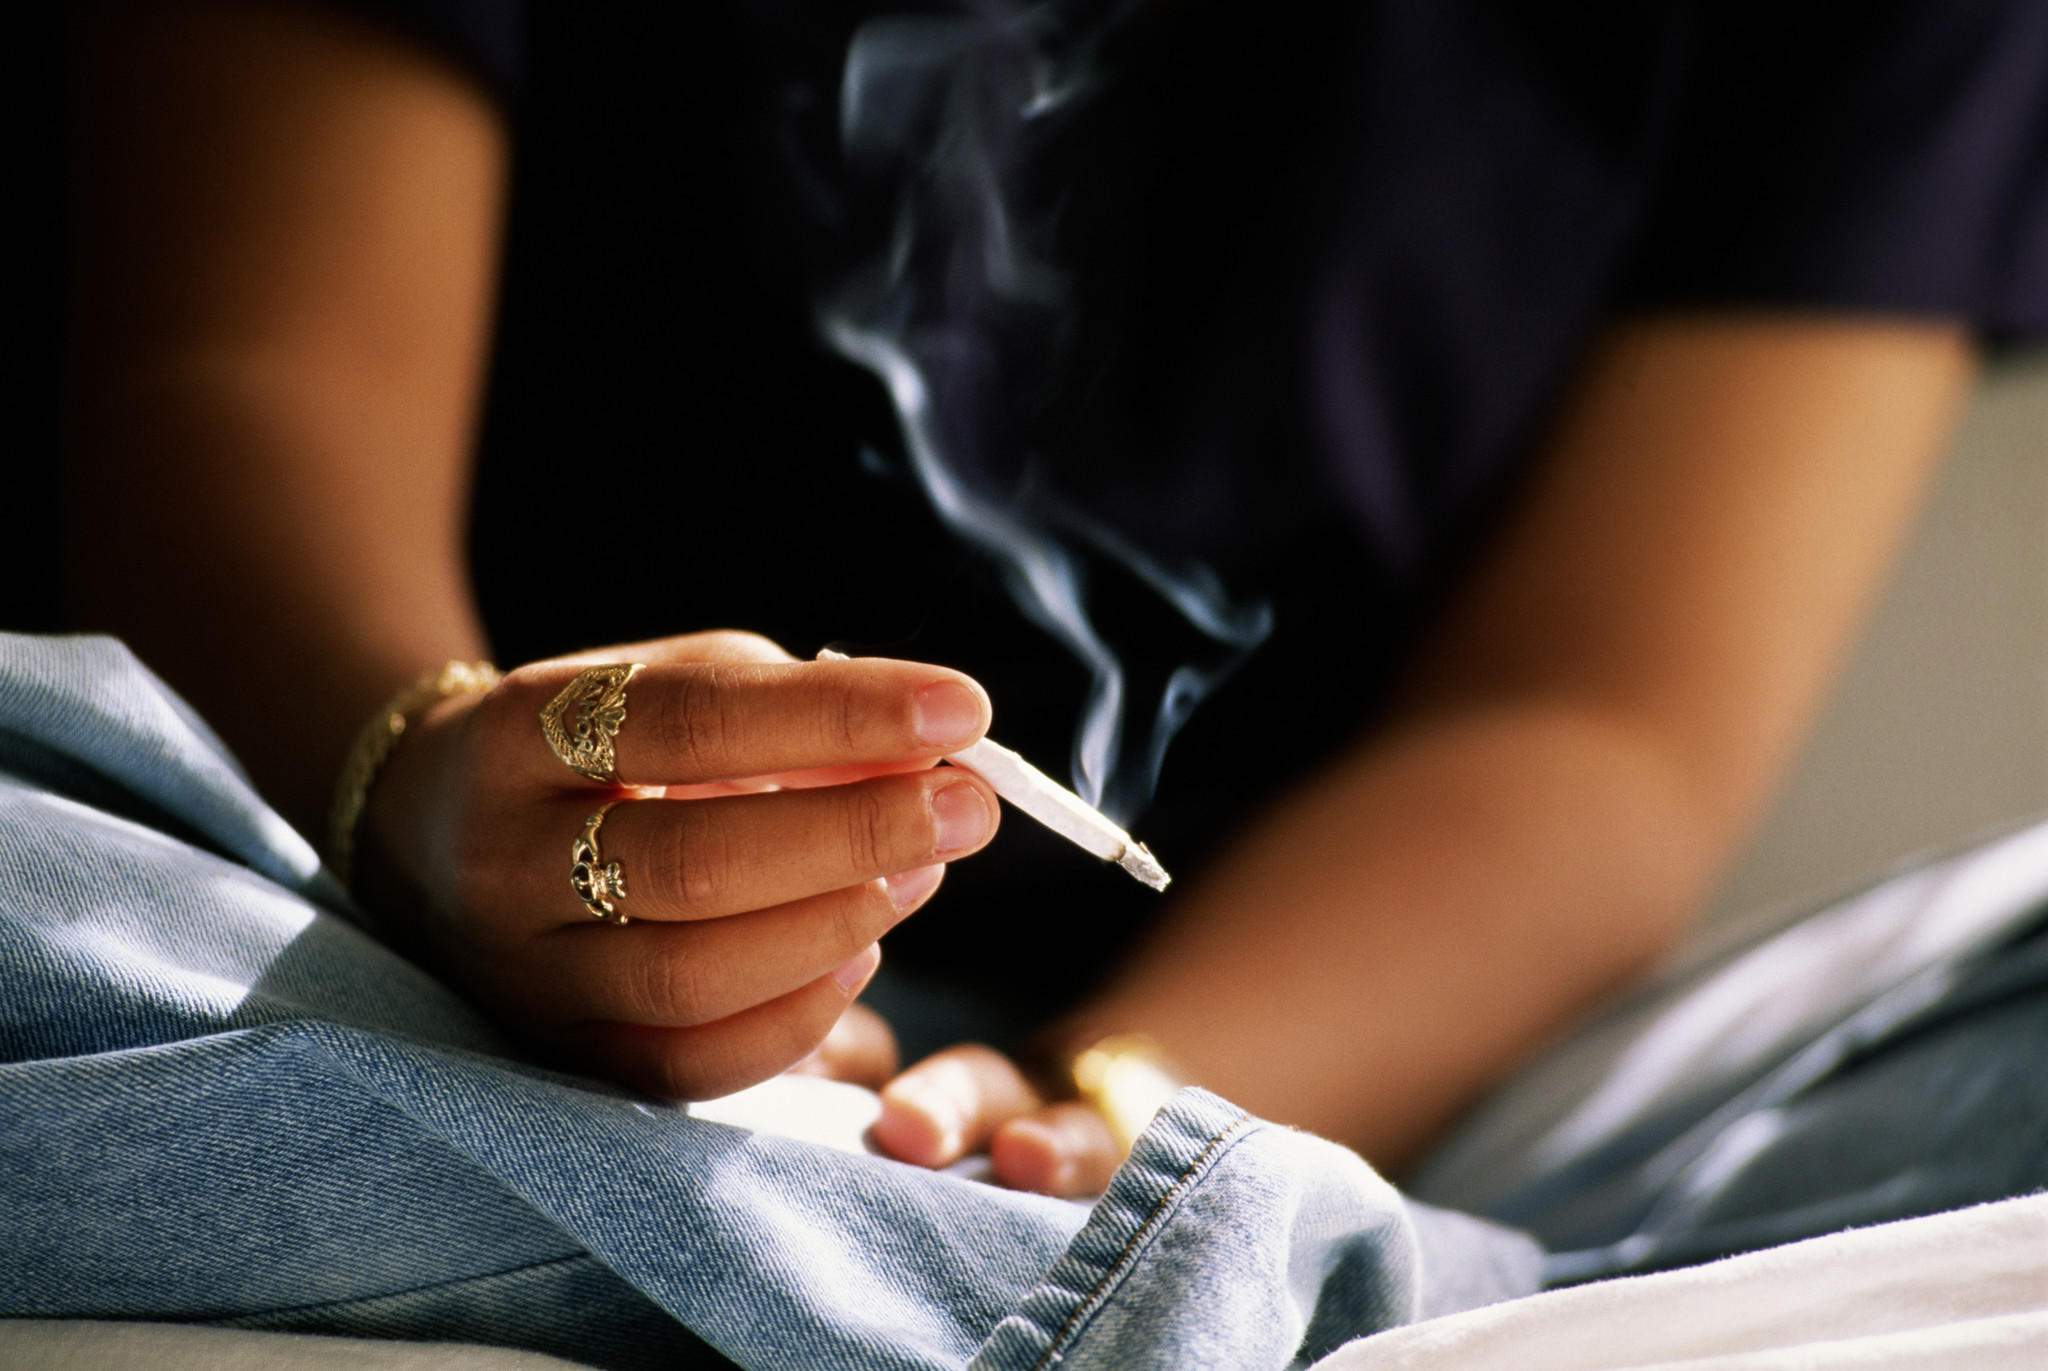 A teenager smokes a hand-rolled cigarette.